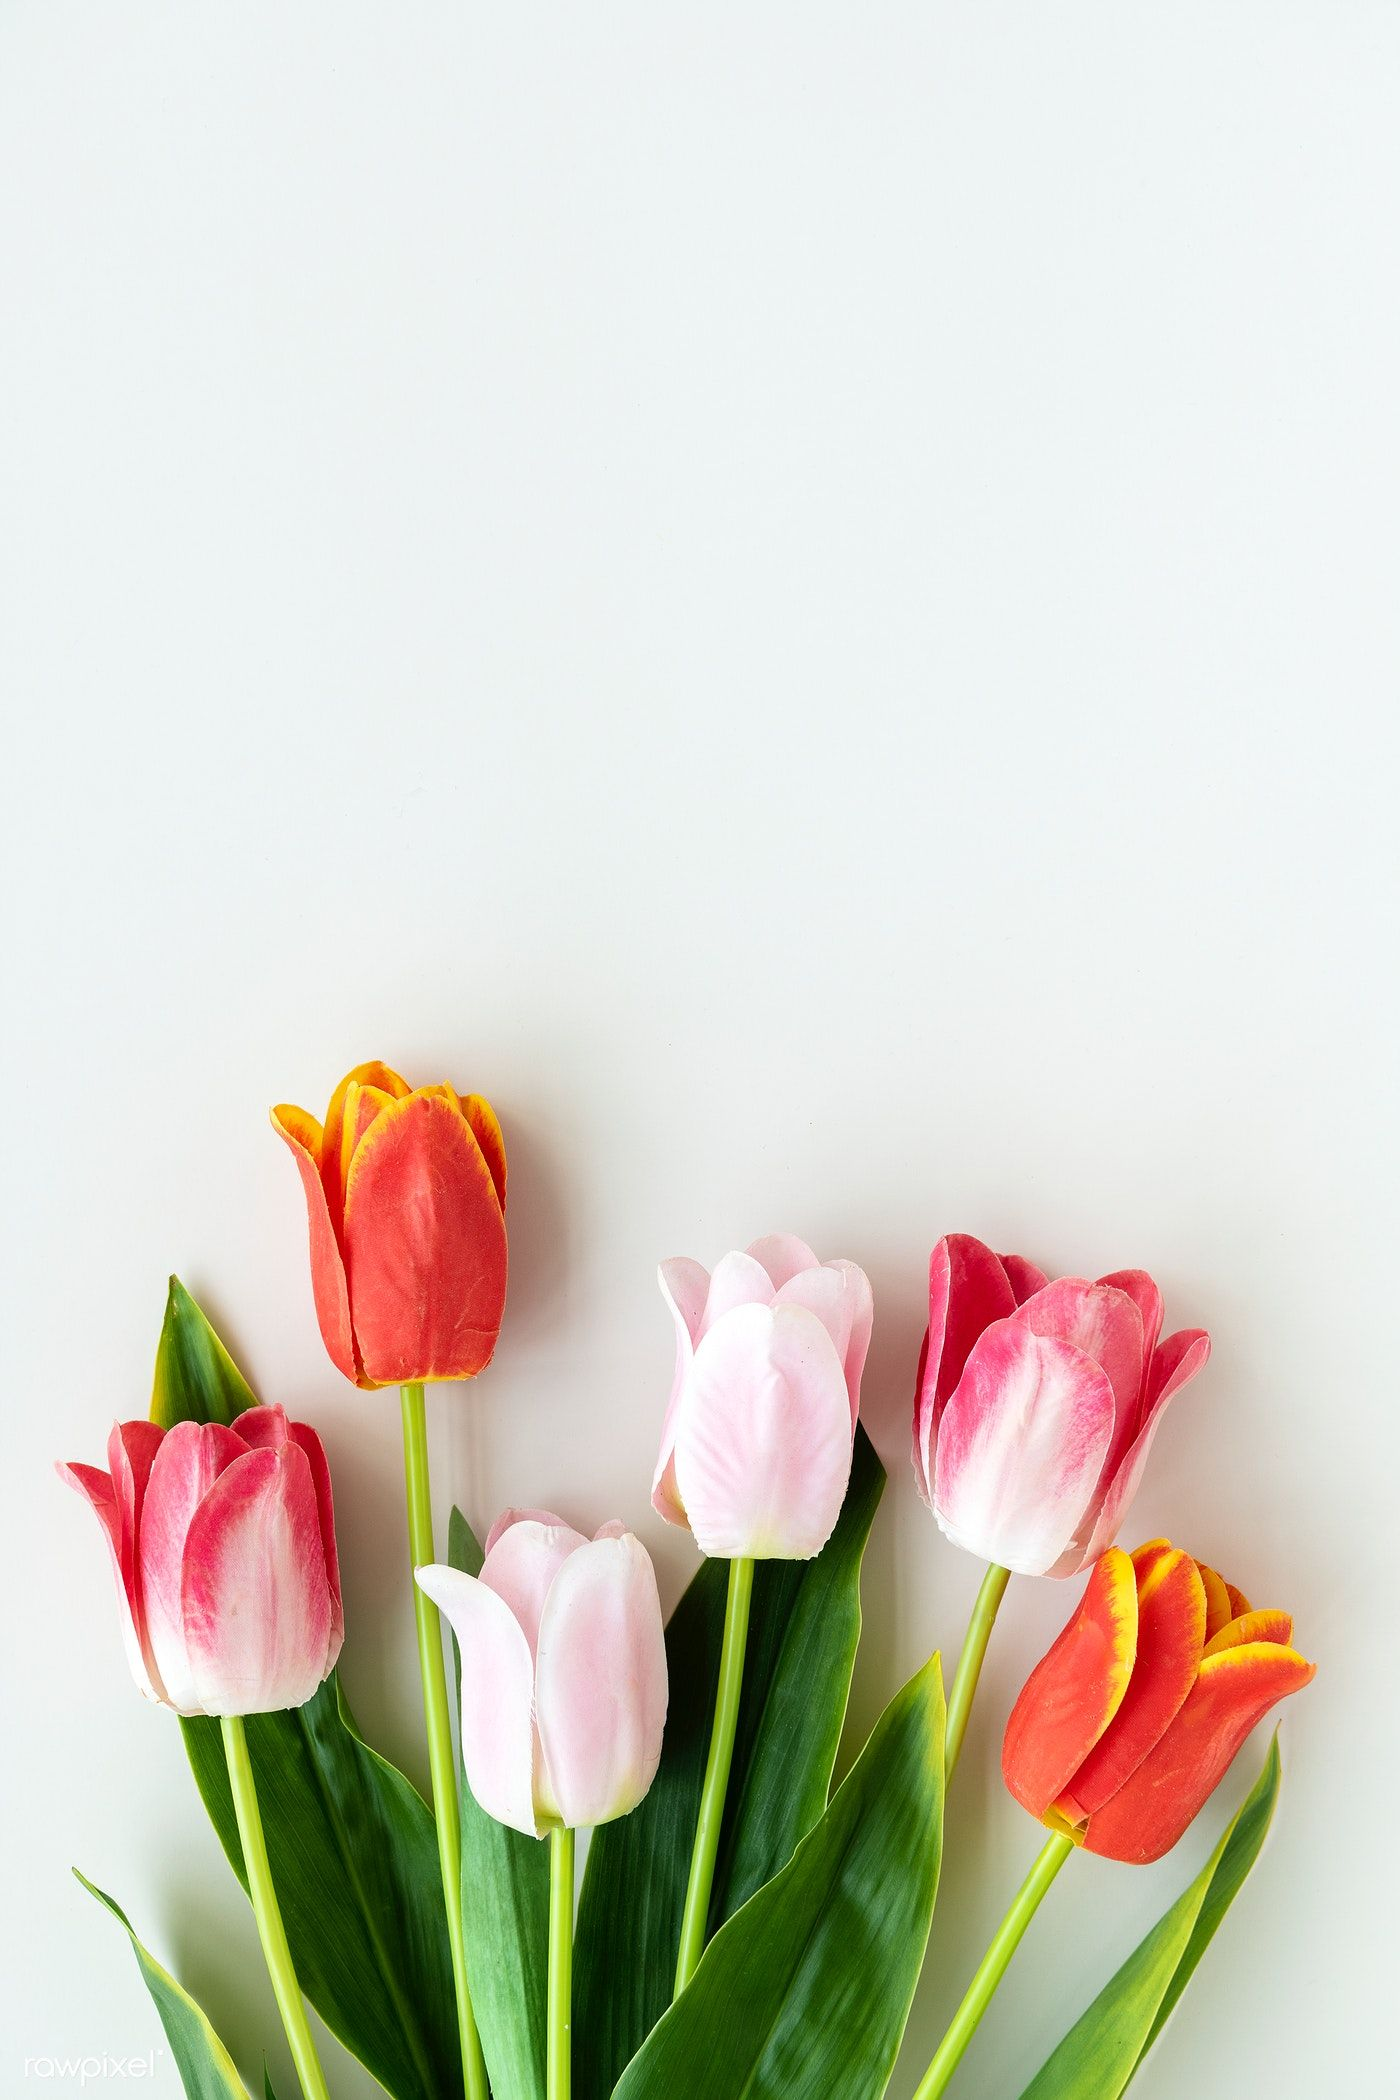 Download Premium Image Of Pink And Orange Tulips On Blank White Background Blank White Background Flower Wallpaper Spring Wallpaper